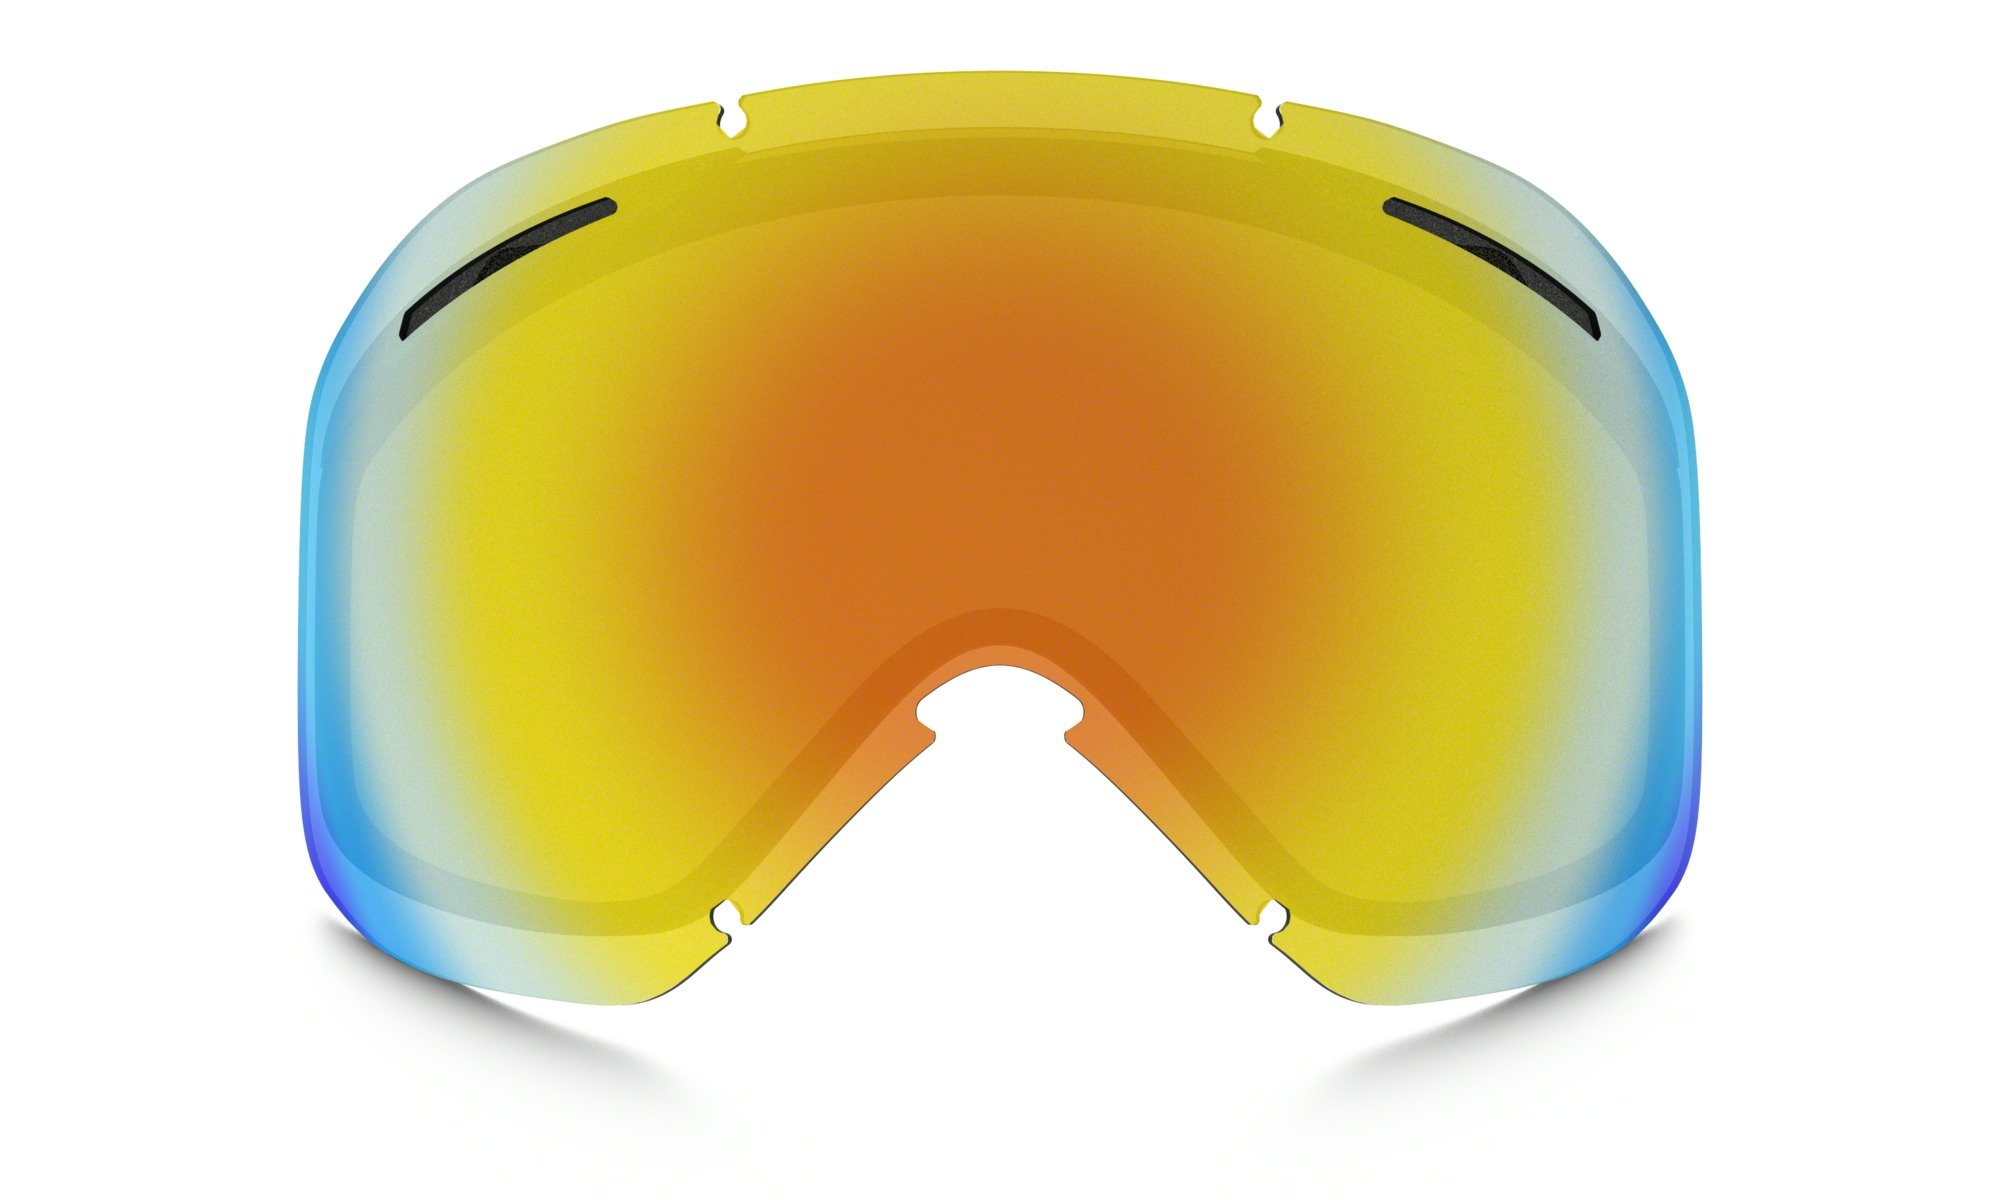 oakley snow lenses  Oakley Goggle Lens Color / Tint Guide